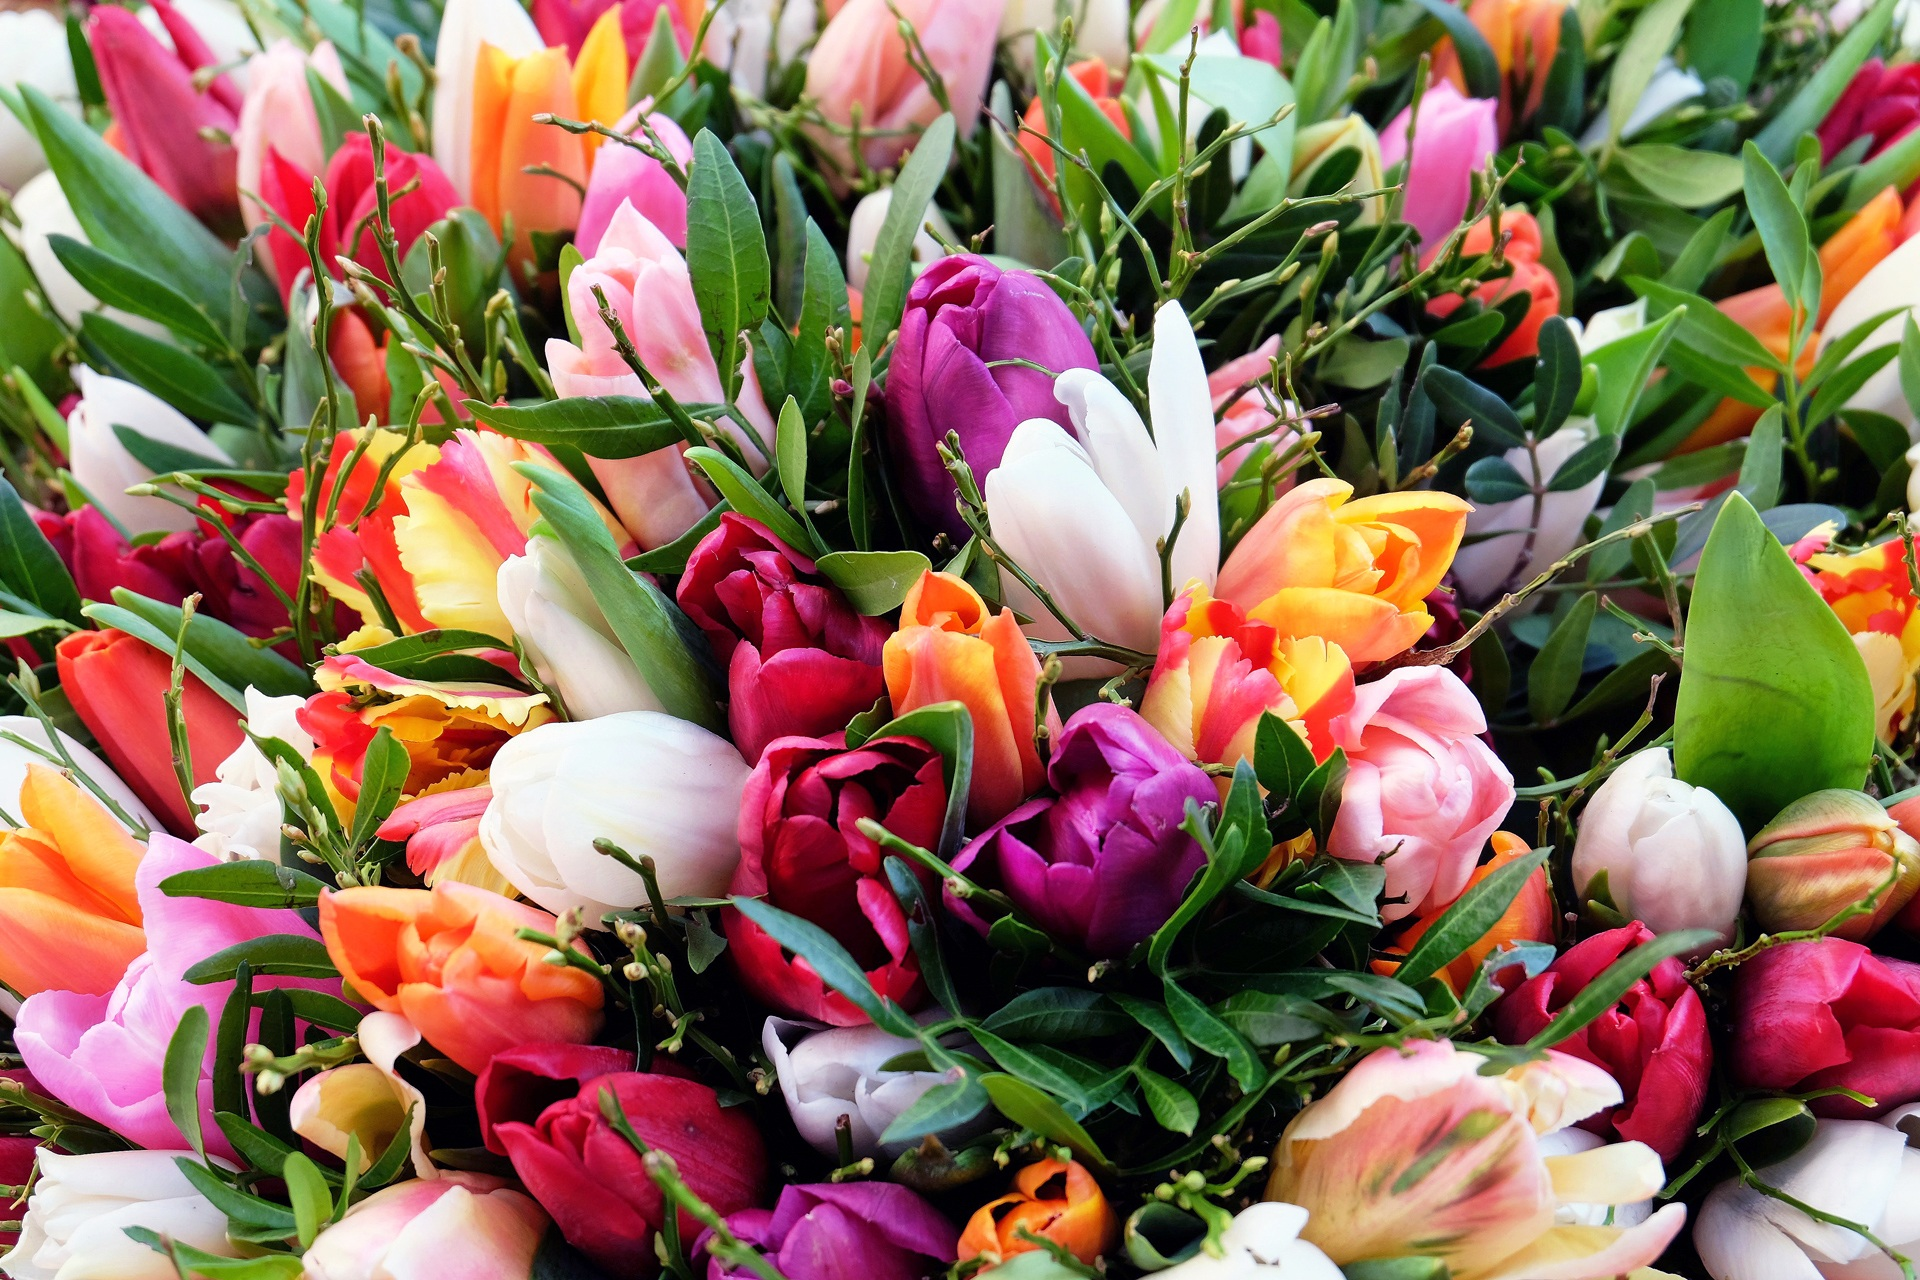 plant flower petal bloom tulip colorful flora tulip bouquet flowers tulips floristry spring flowers flowering plant flower bouquet floral design land plant flower arranging 1292082